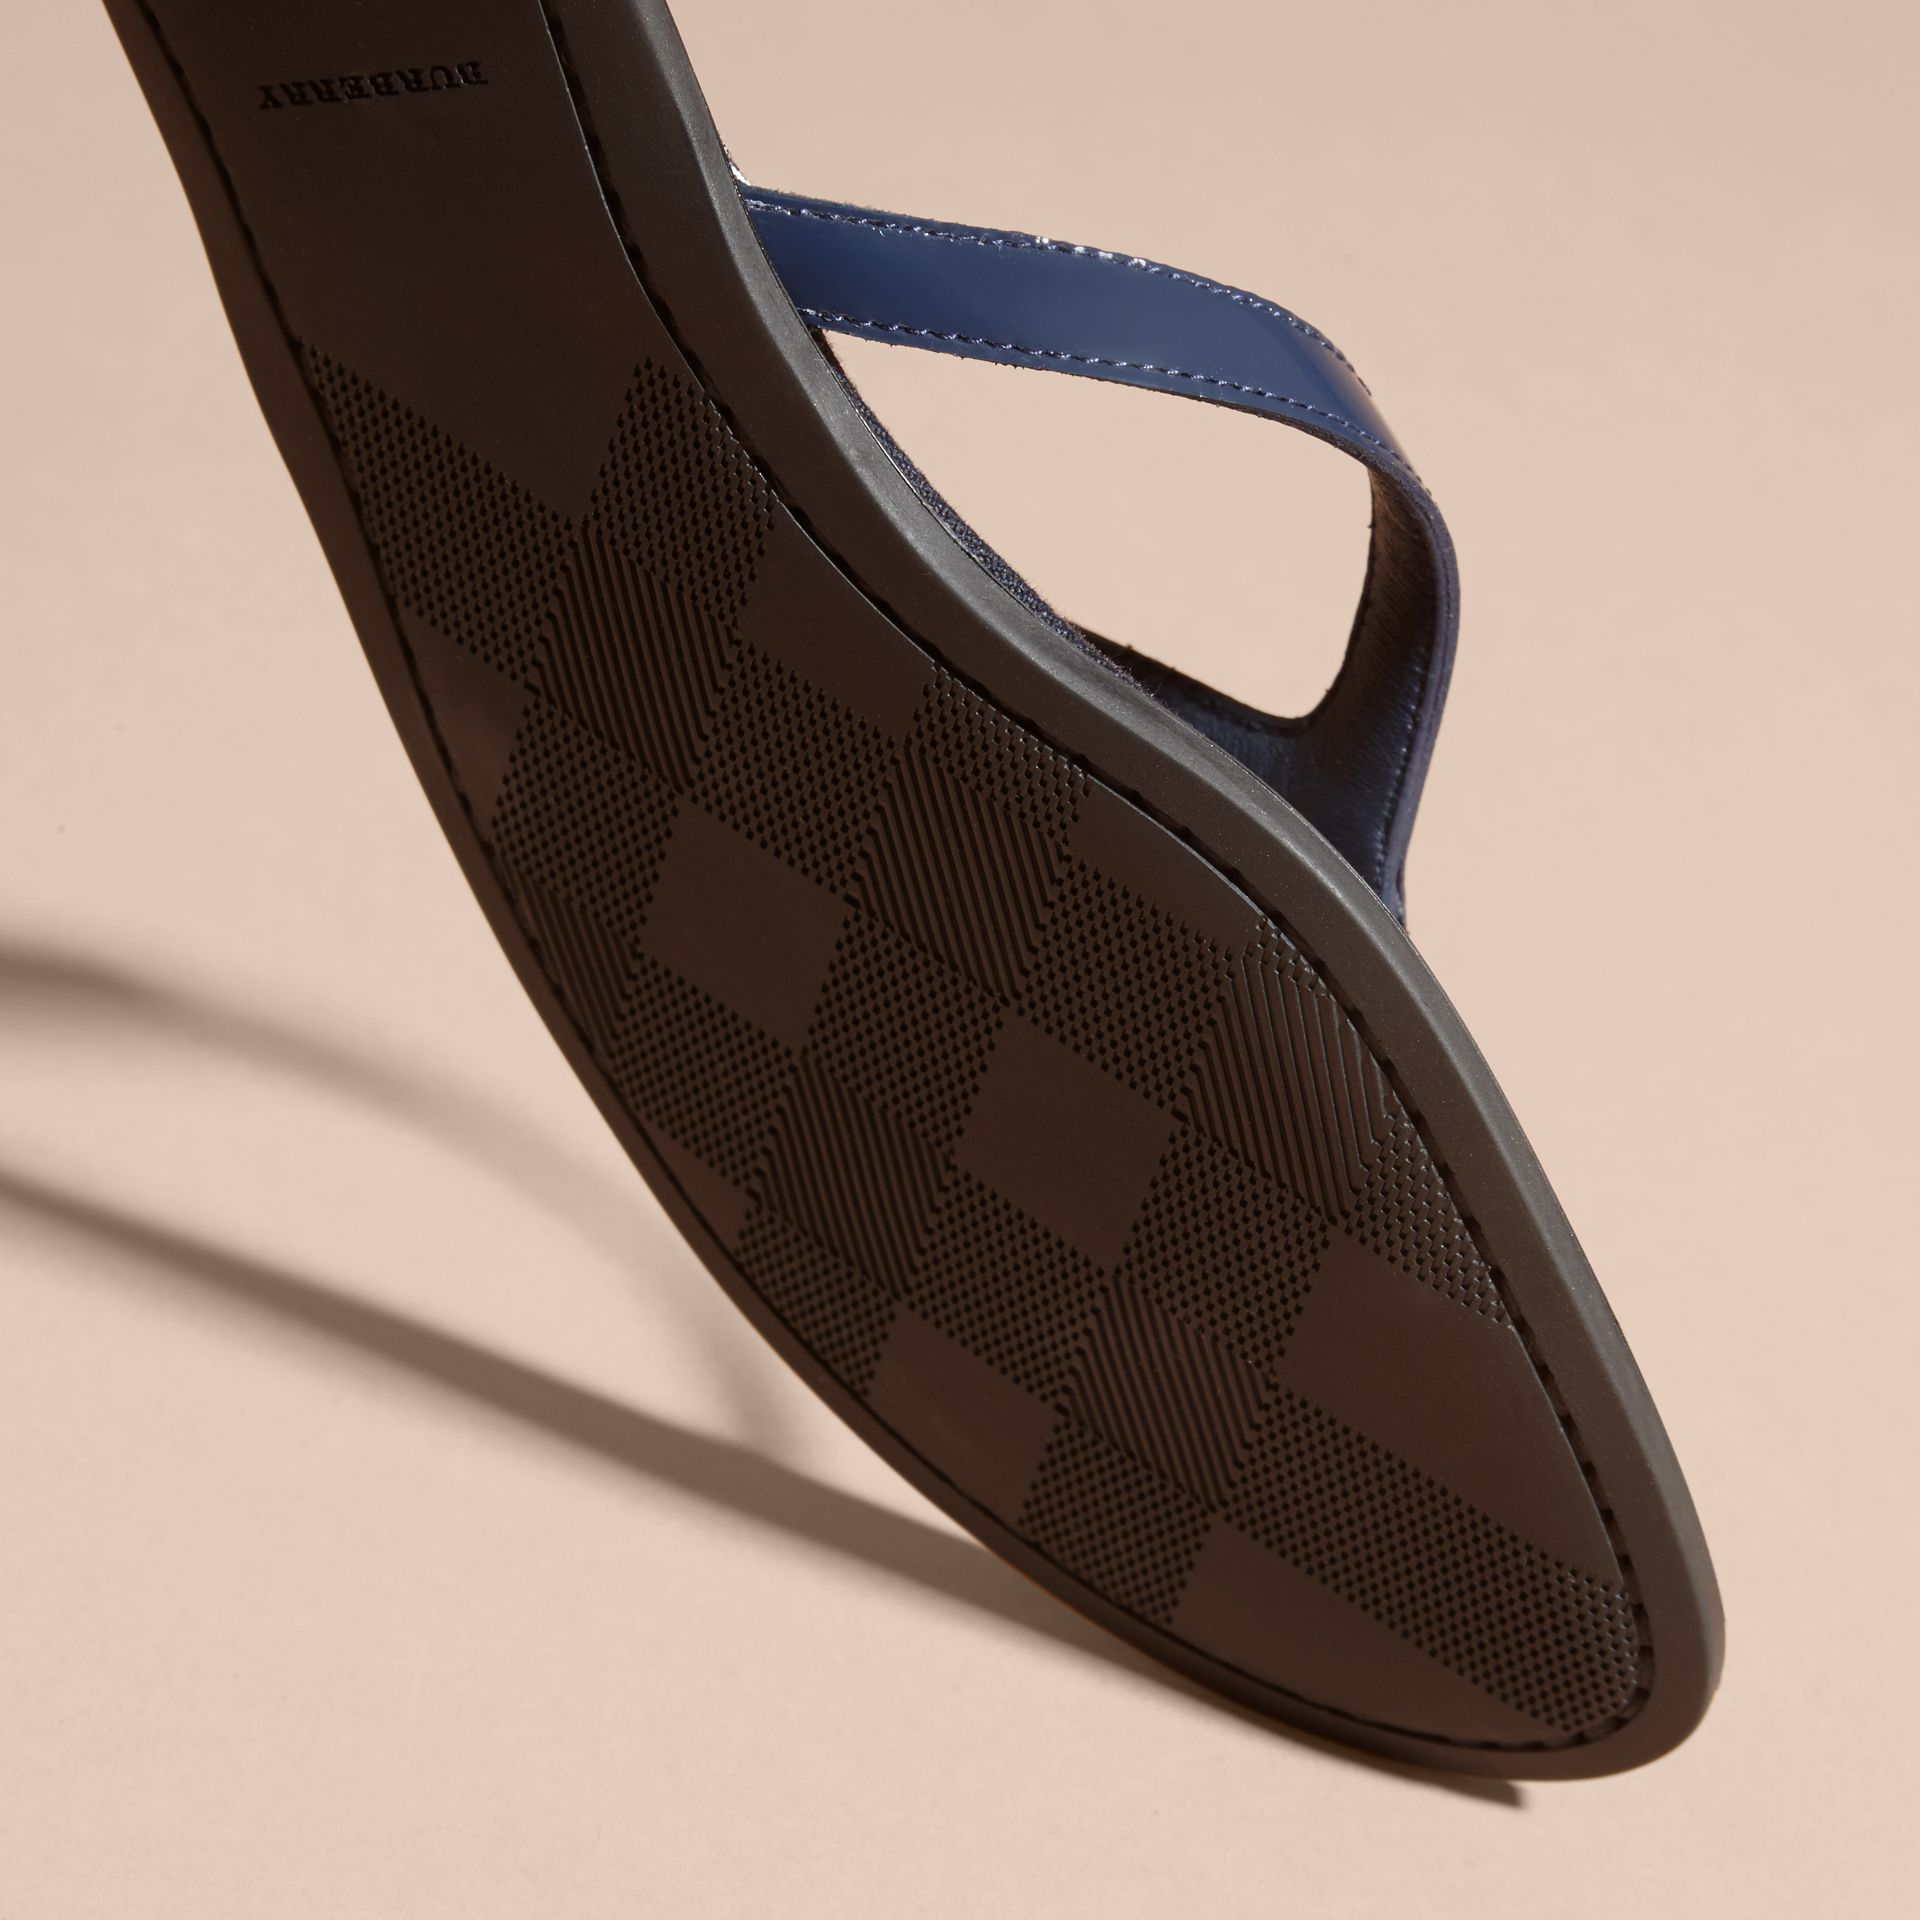 House Check and Patent Leather Sandals in Indigo Blue - Women | Burberry Hong Kong - gallery image 5